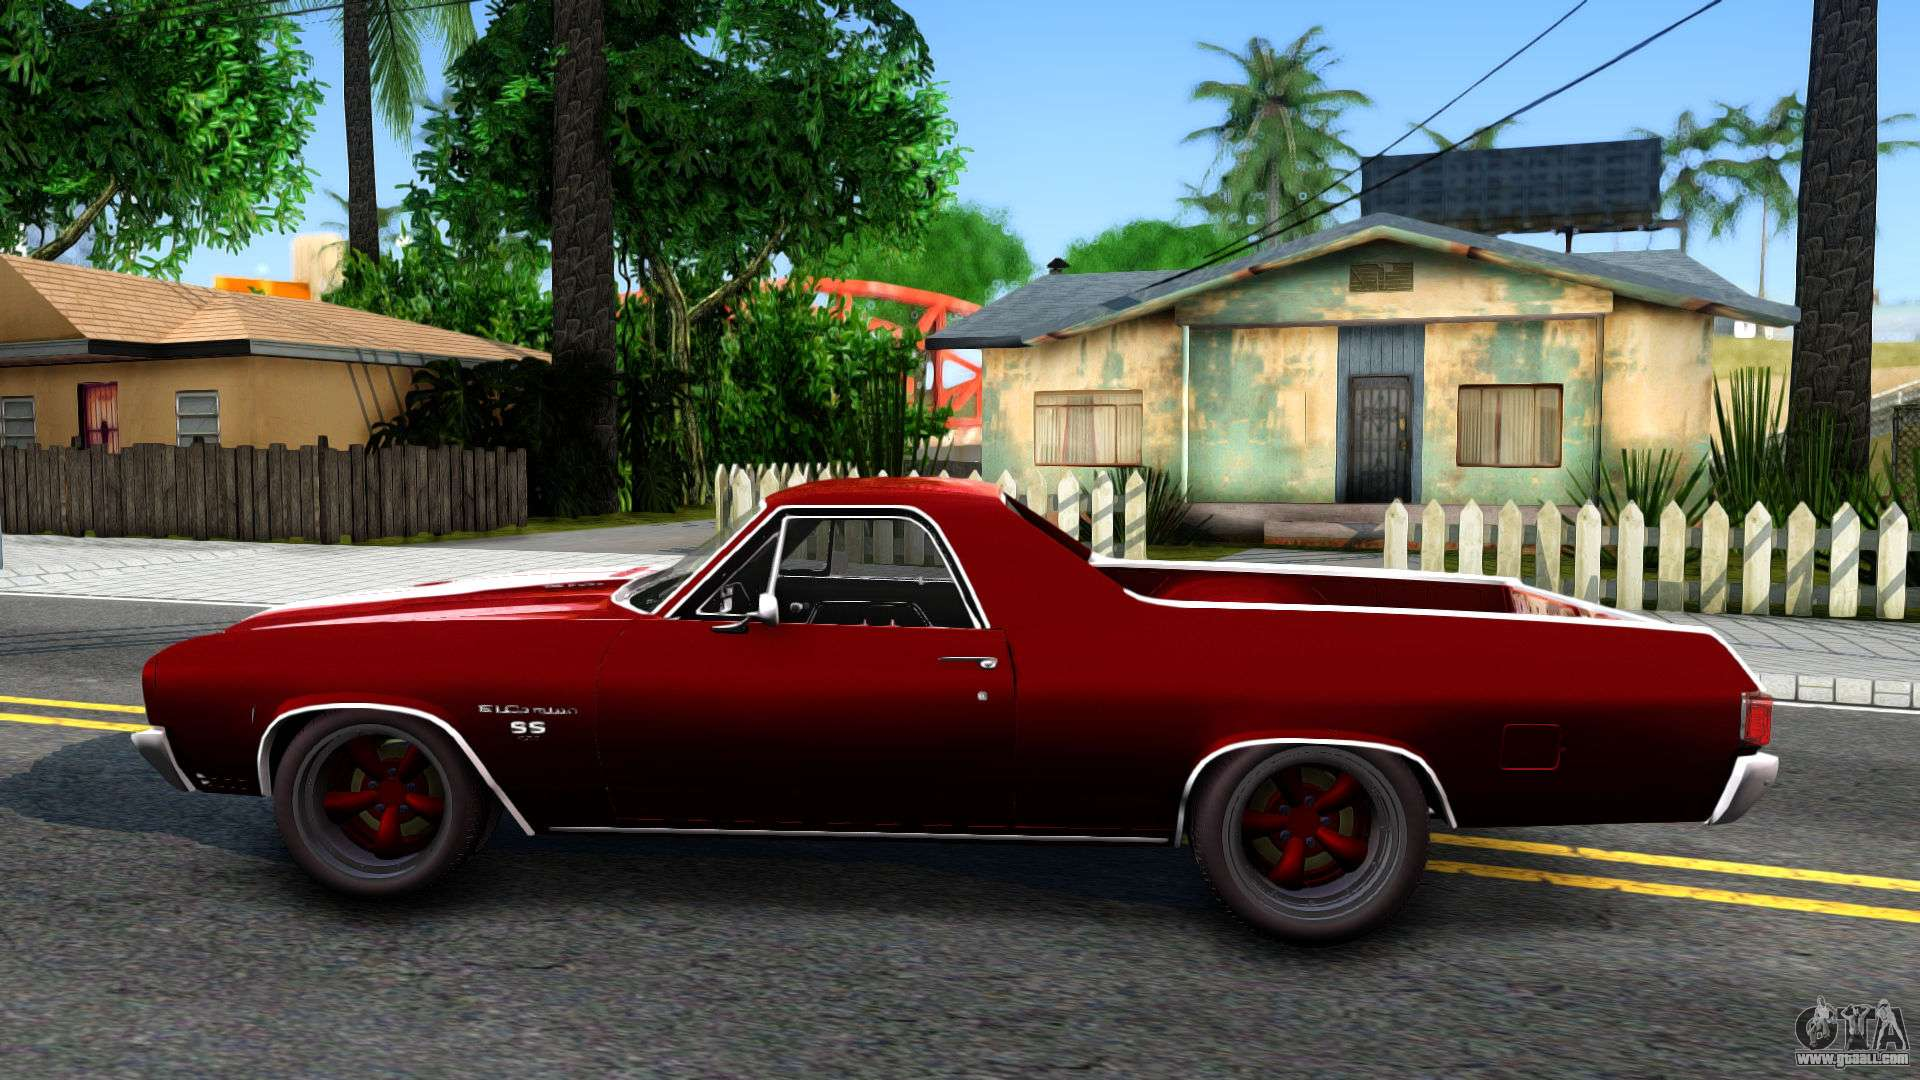 Bmk Fd besides E A A D furthermore Blazer furthermore Enb together with Chevrolet El Ca X W. on chevrolet el camino ss